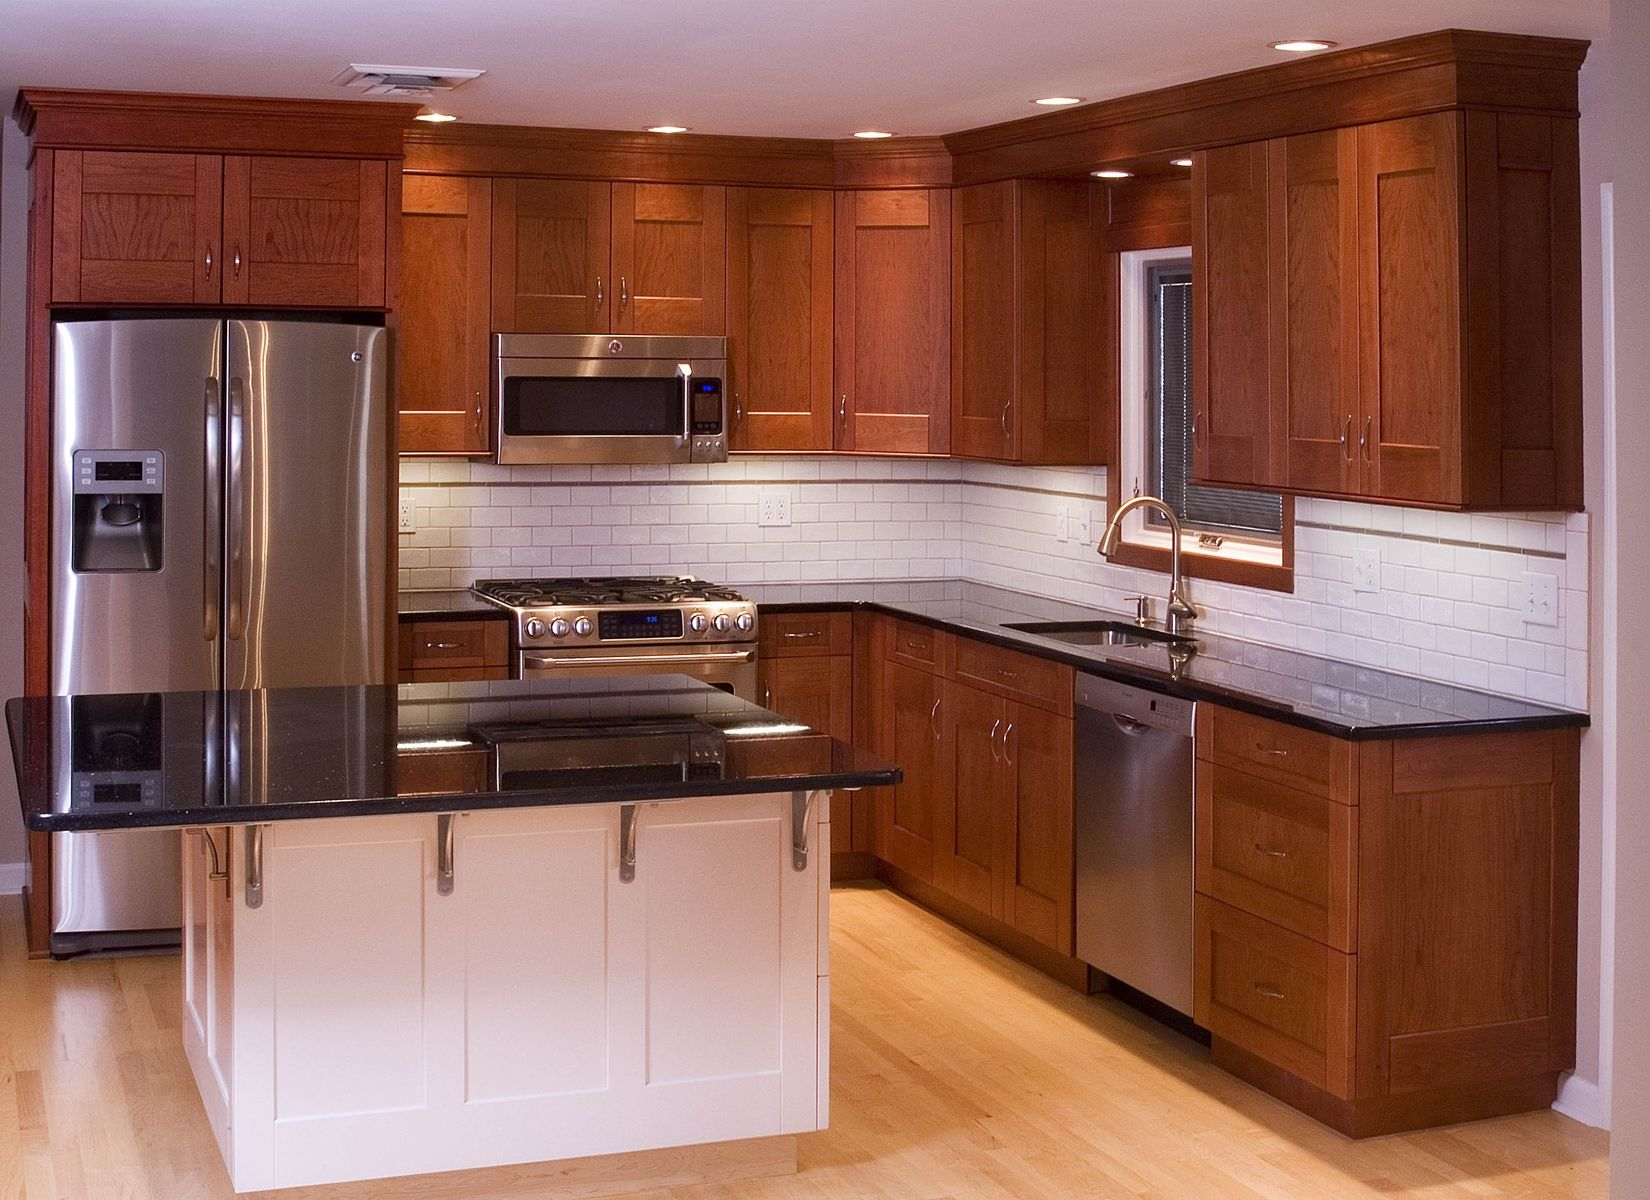 Hand made cherry kitchen cabinets by neal barrett woodworking - Custom made kitchen cabinets ...